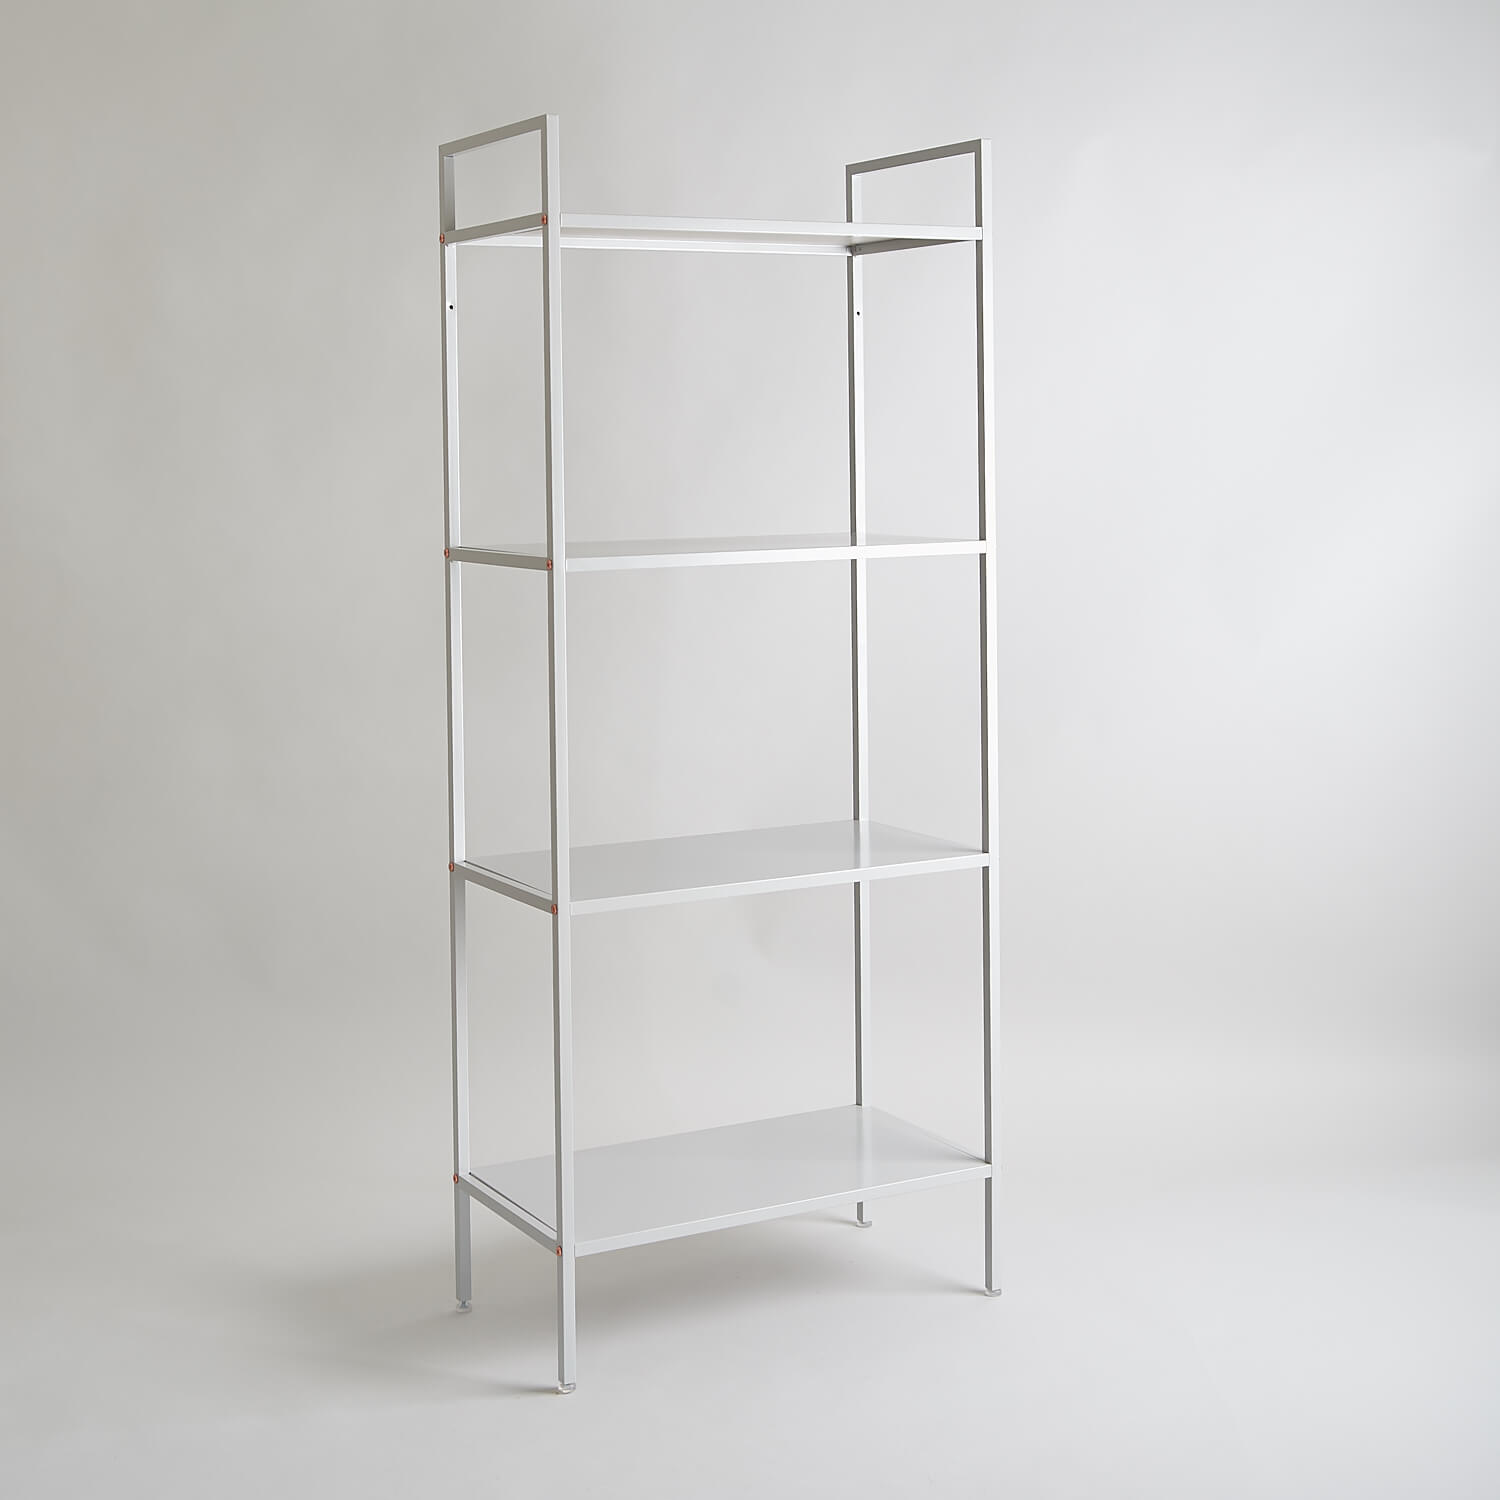 Contemporary grey metal shelving unit part of the studio furniture set